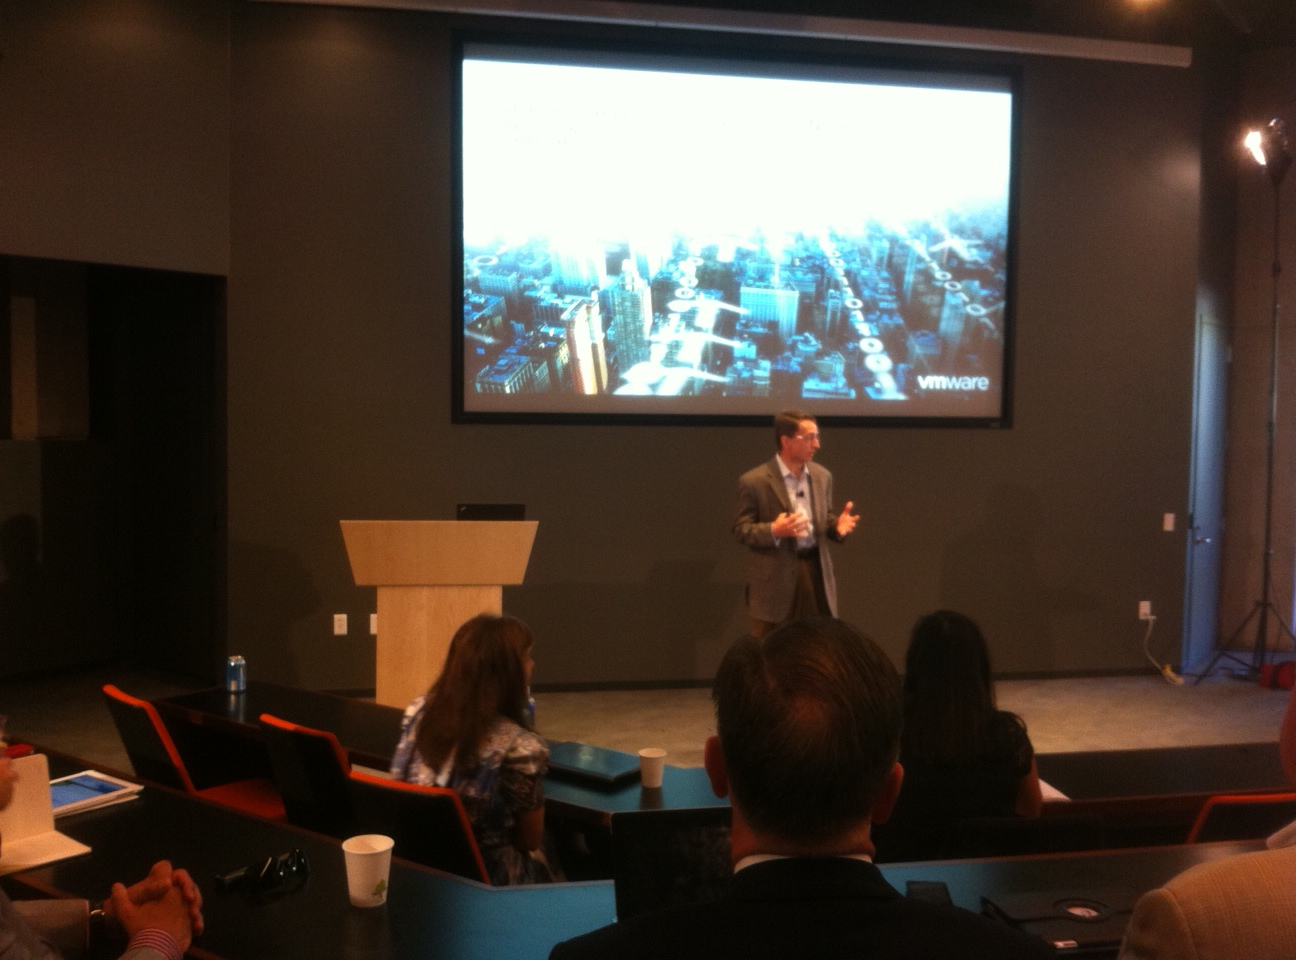 Pat Gelsinger, CEO of VMware, at press event to unveil details on vCloud Hybrid Service